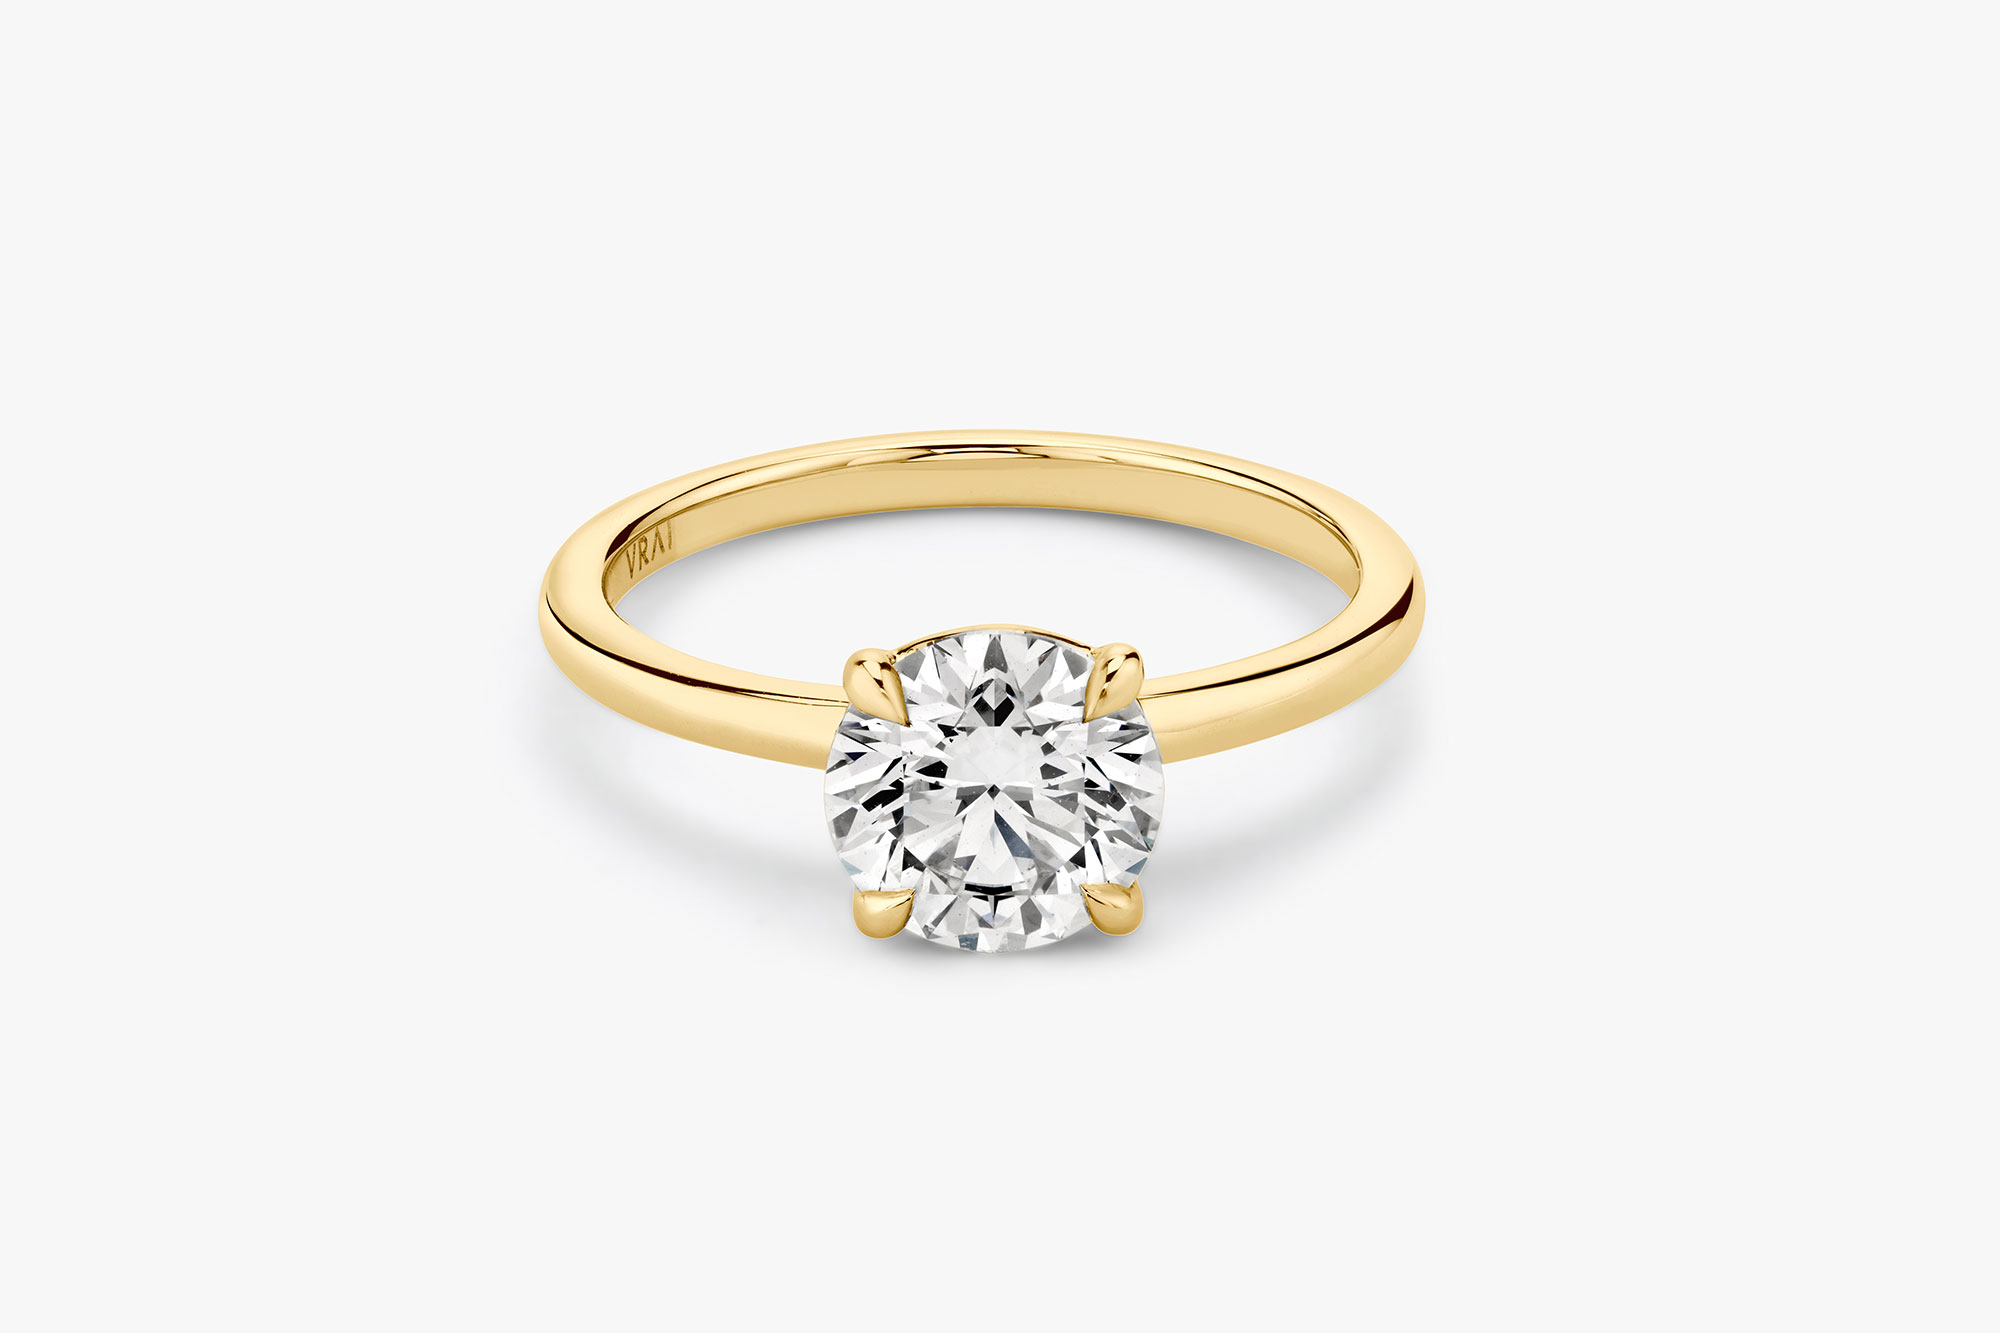 The Signature solitaire ring in 18k yellow gold with a round brilliant cut diamond